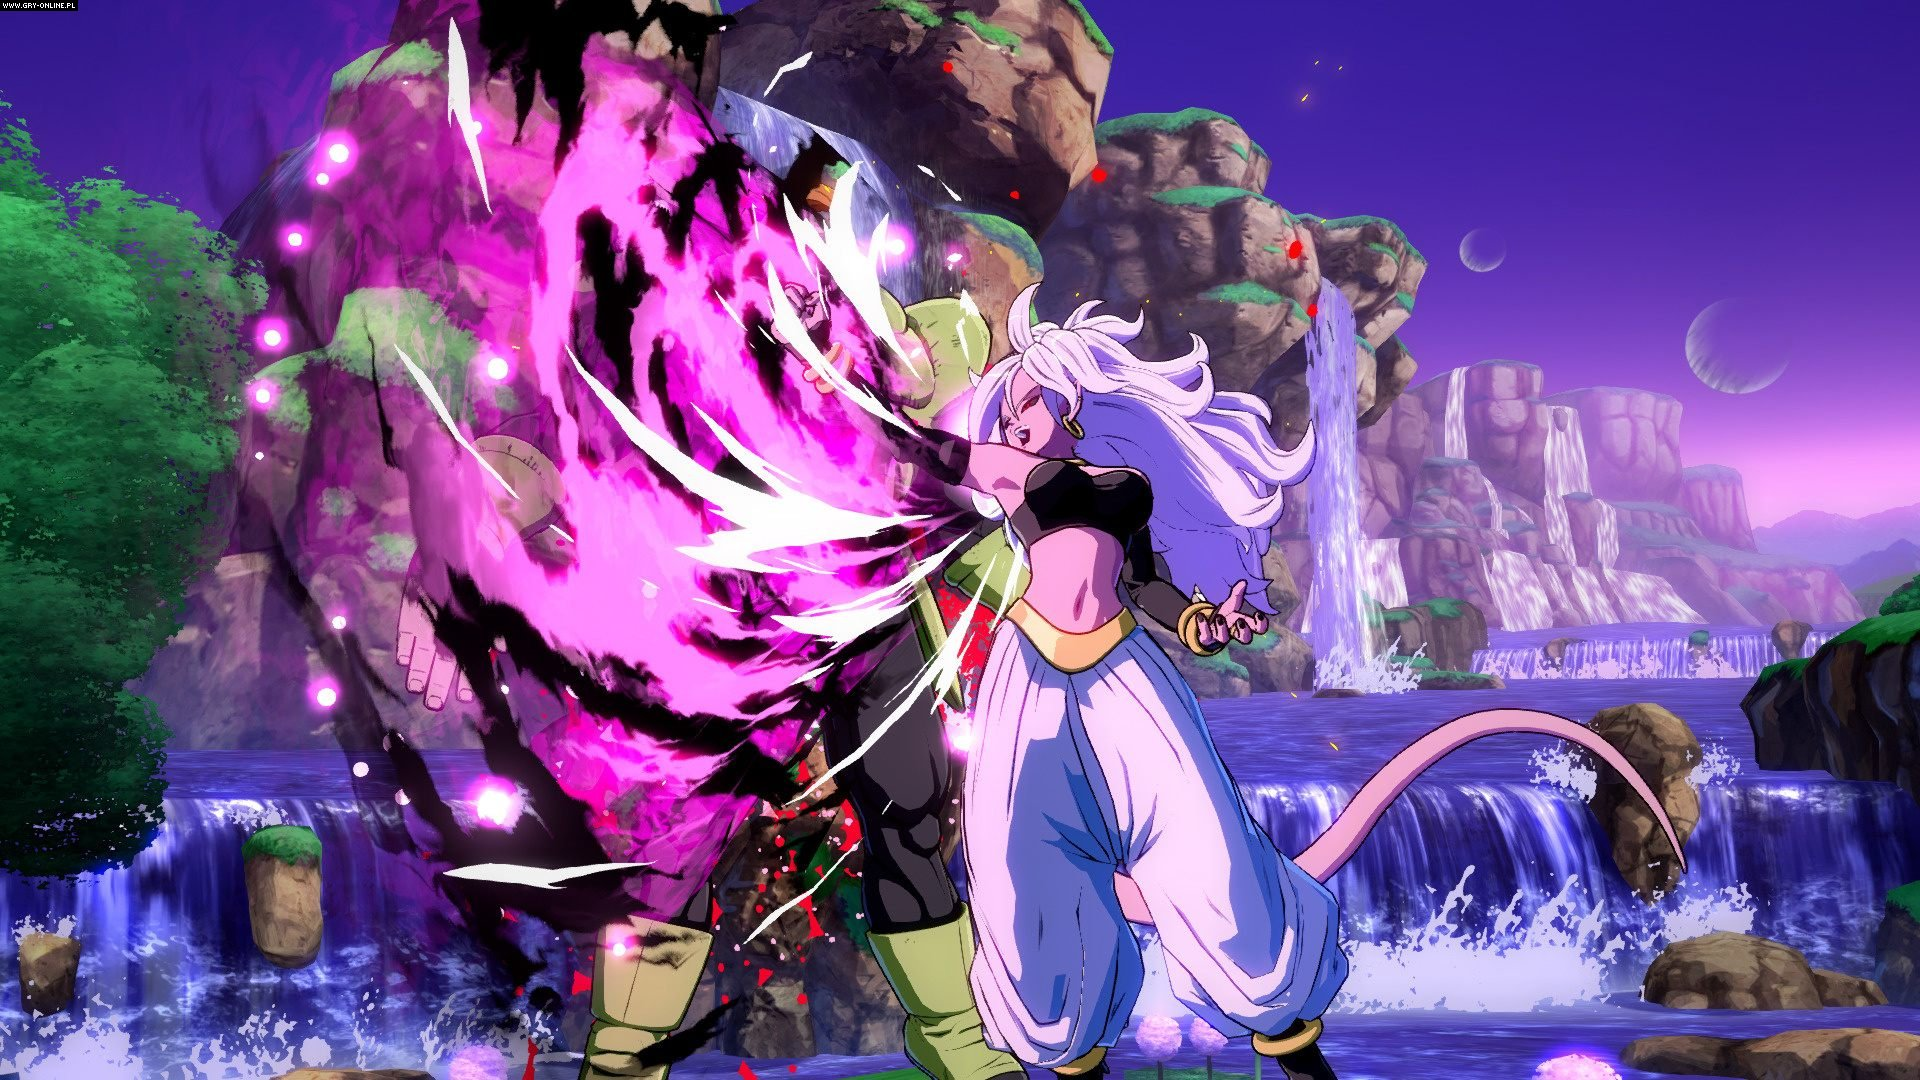 Dragon Ball FighterZ PC, PS4, XONE, Switch Gry Screen 81/230, Arc System Works, Bandai Namco Entertainment